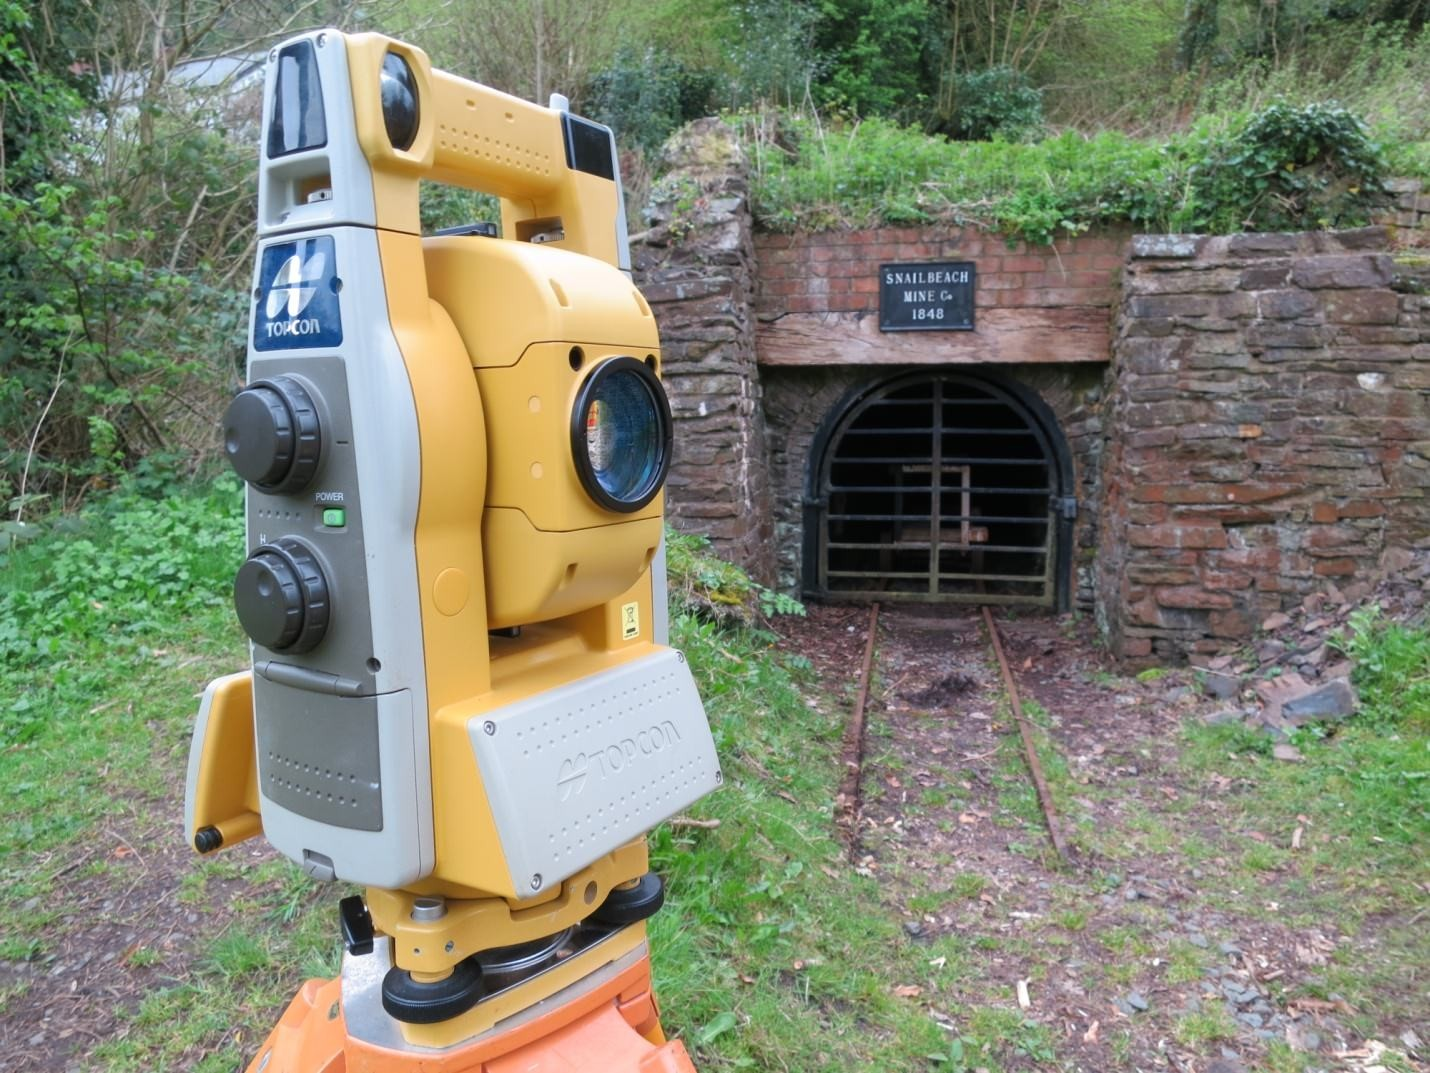 Figure 6 Topcon GPT9005 at entrance to the Day Level, Snailbeach Mine